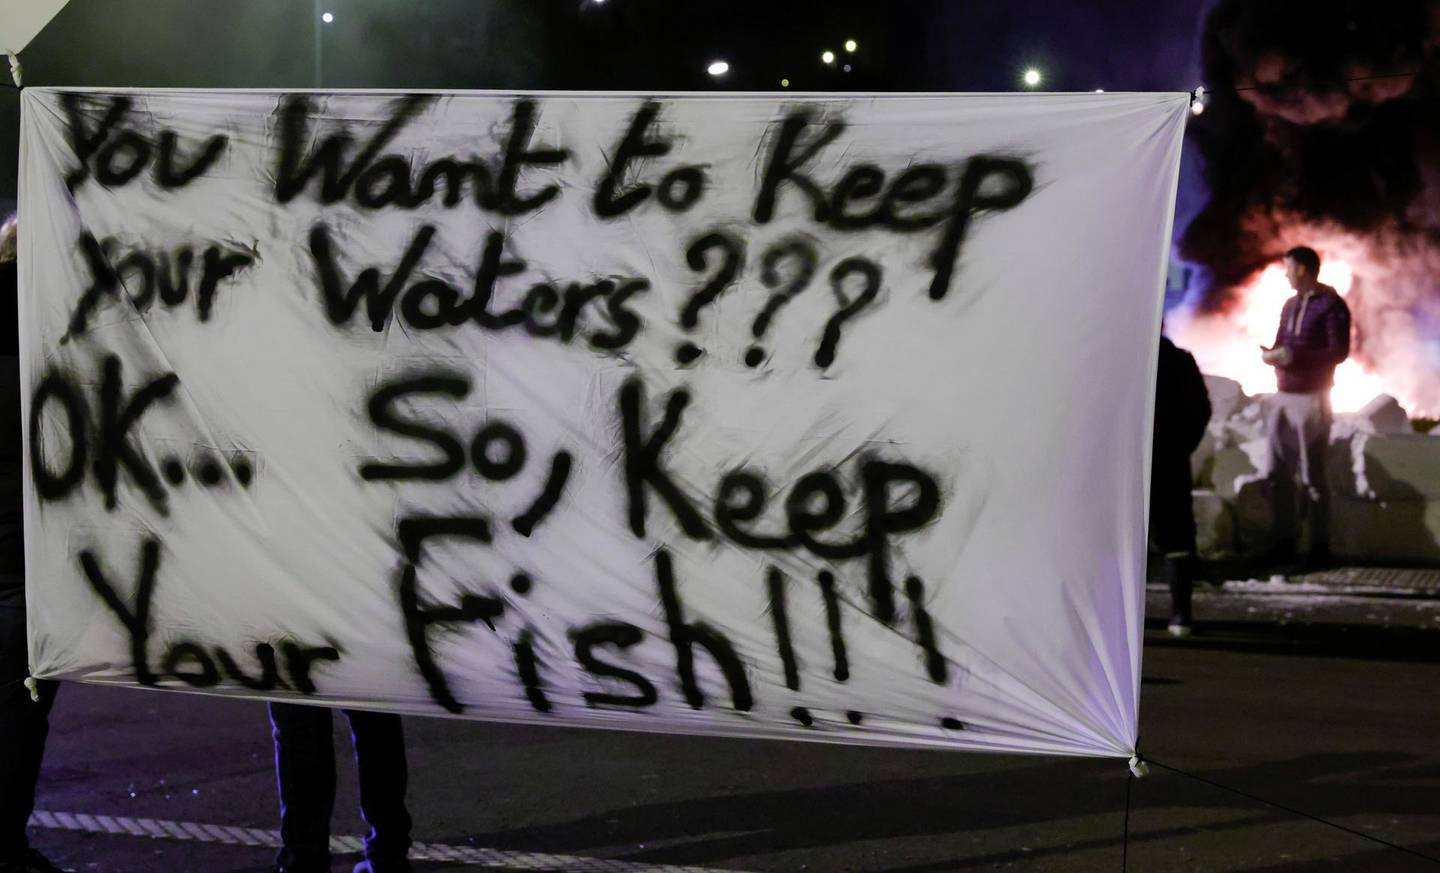 French fishermen hold a banner as they block lorries carrying UK-landed fish to protest for the slow issuance of licenses to fish inside British waters, at the fishing port in Boulogne-sur-Mer, France, April 23, 2021. REUTERS/Pascal Rossignol